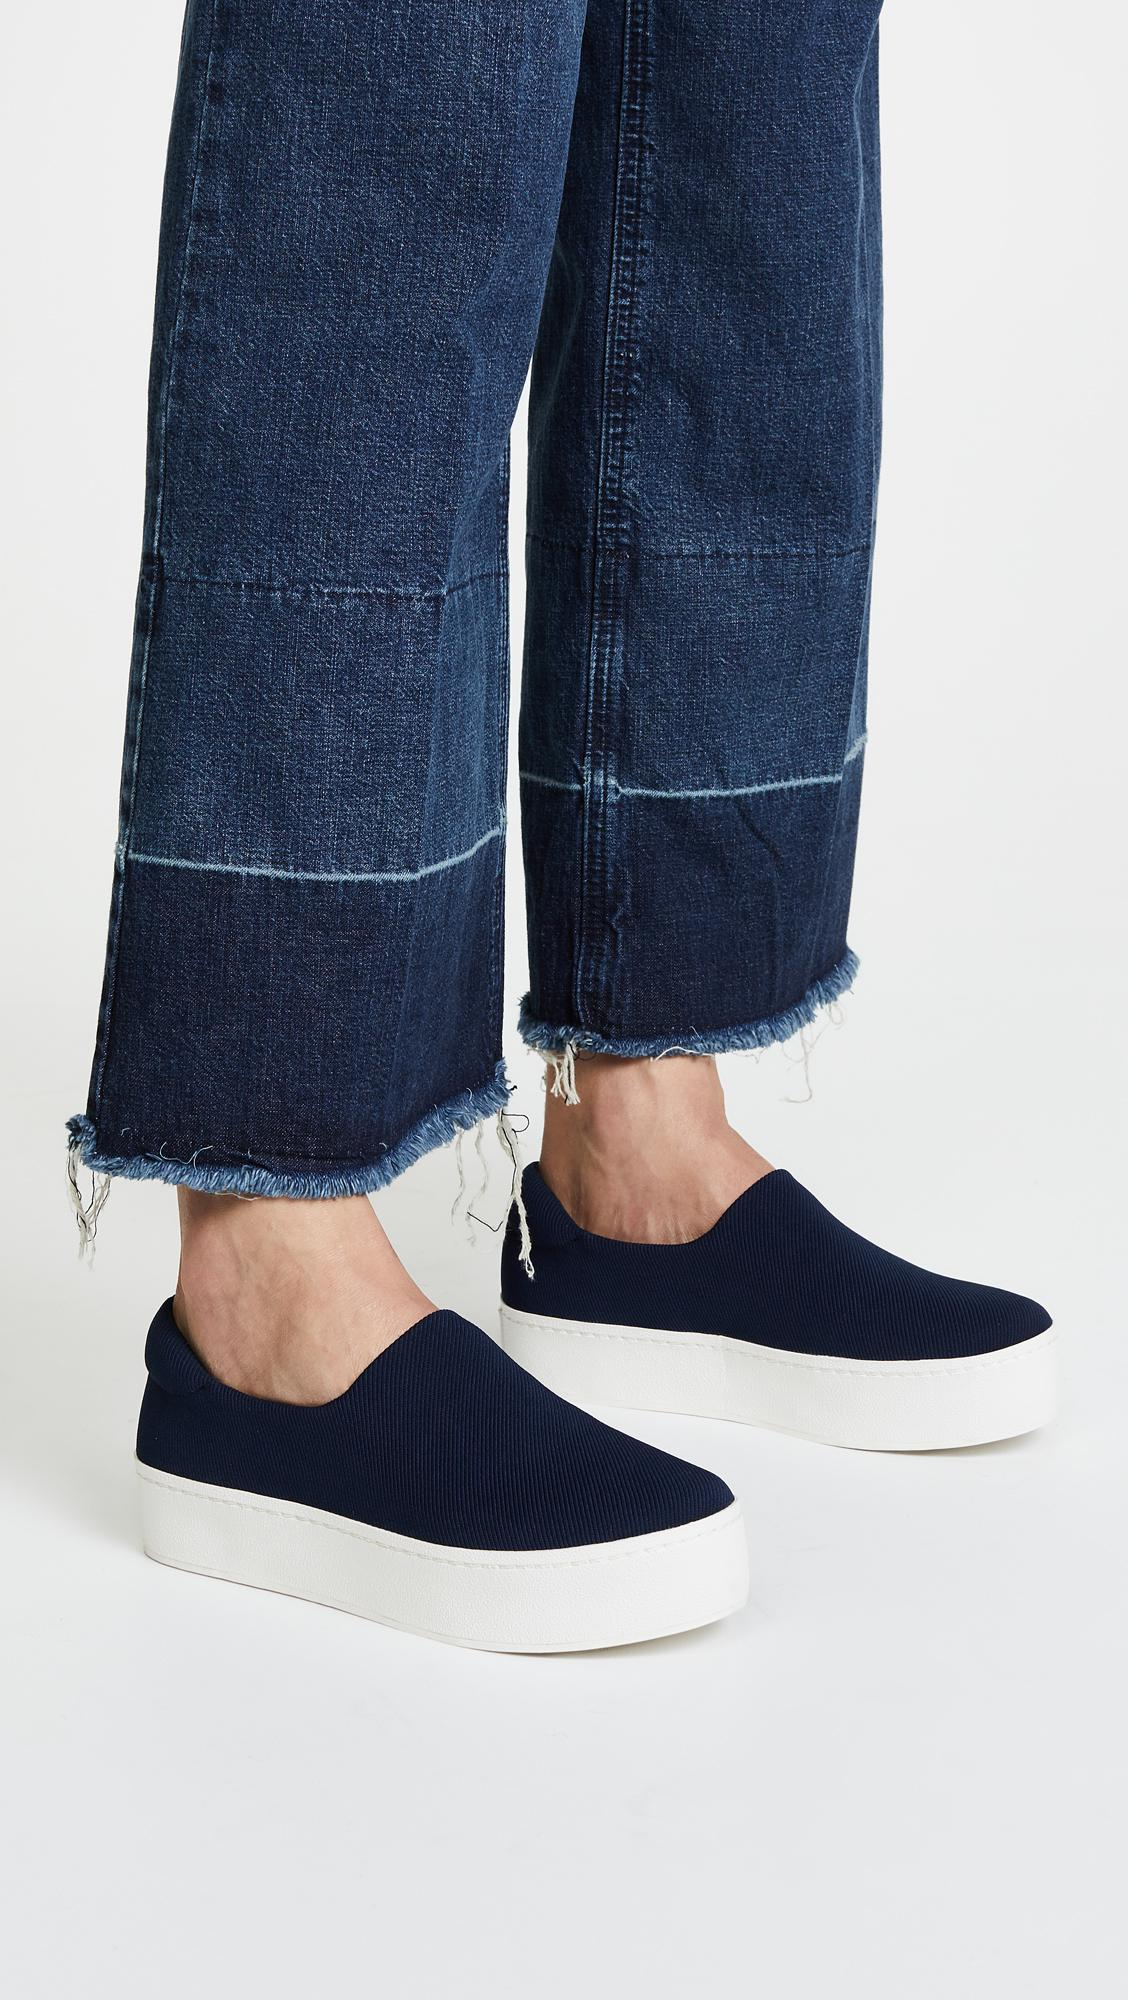 Navy Cici Slip-On Sneakers Opening Ceremony STmAYuTcR